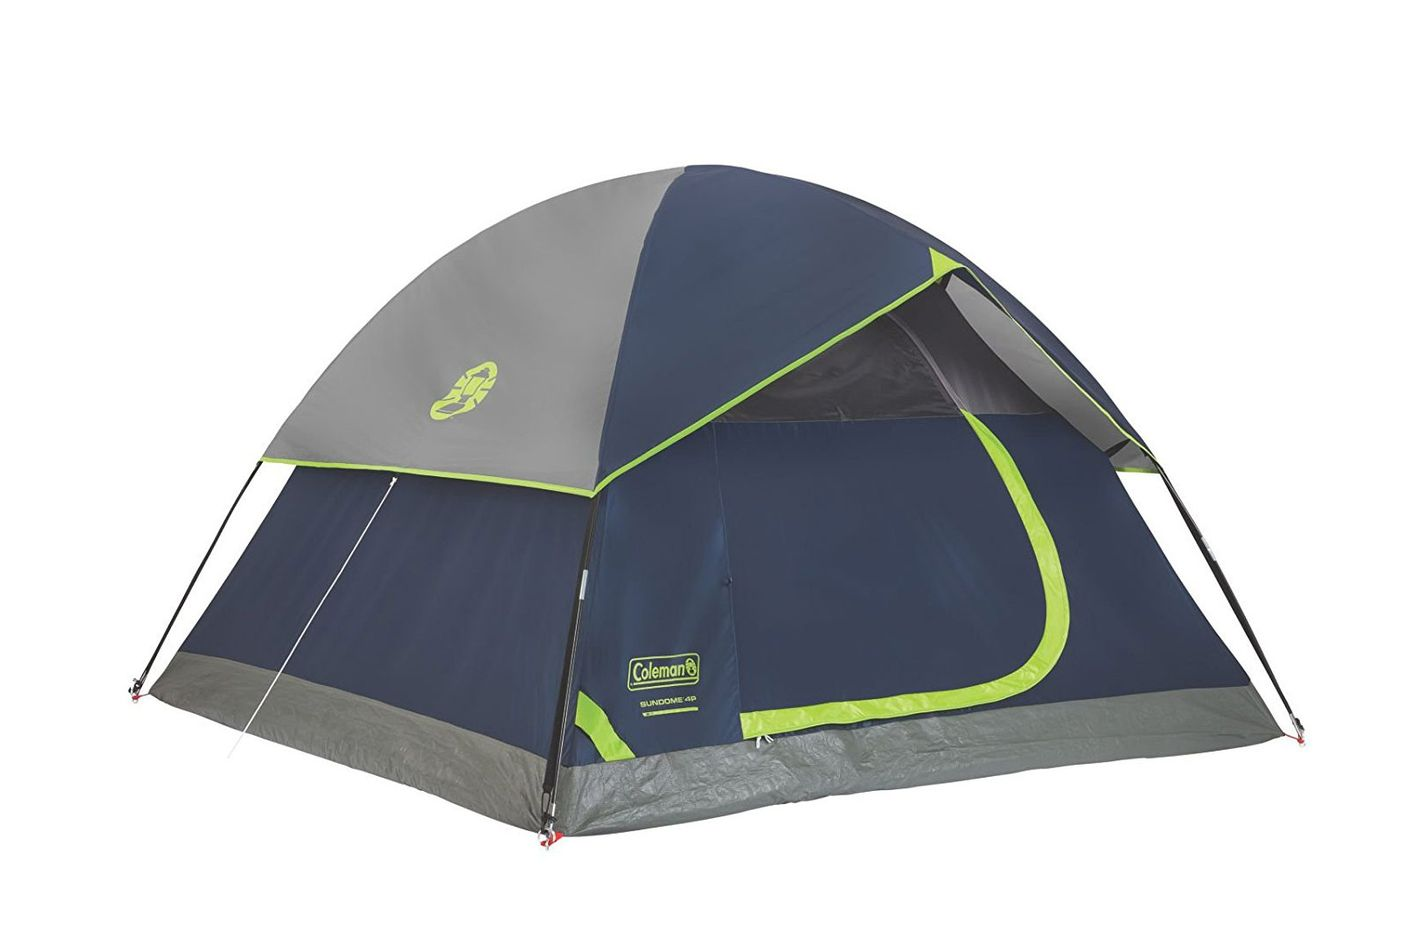 Four-Person Dome Tent  sc 1 st  NYMag & The Best Outdoor Tents on Amazon Reviews